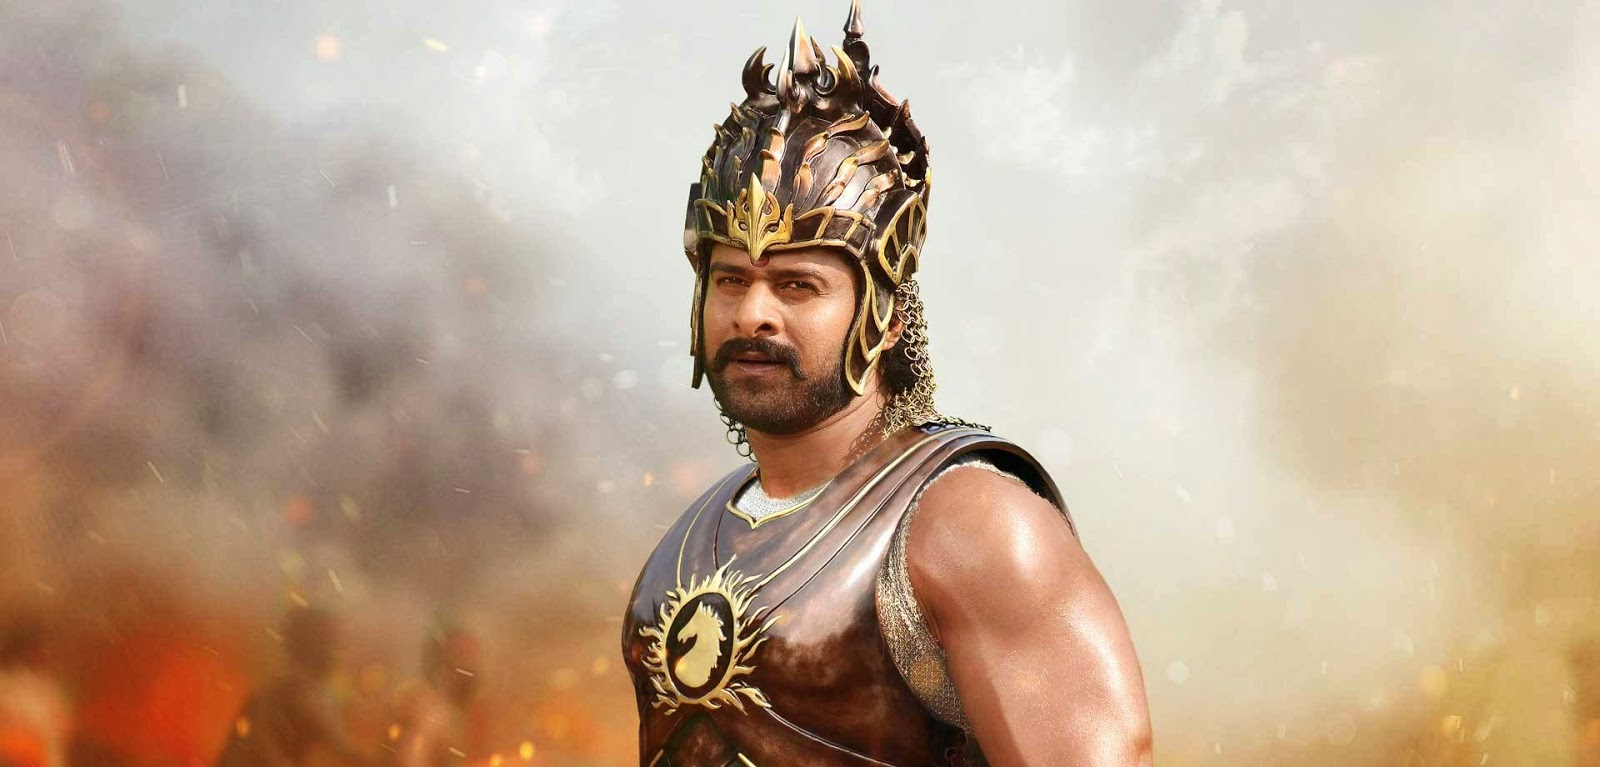 Wallpaper download bahubali - Bahubali Hd Wallpapers